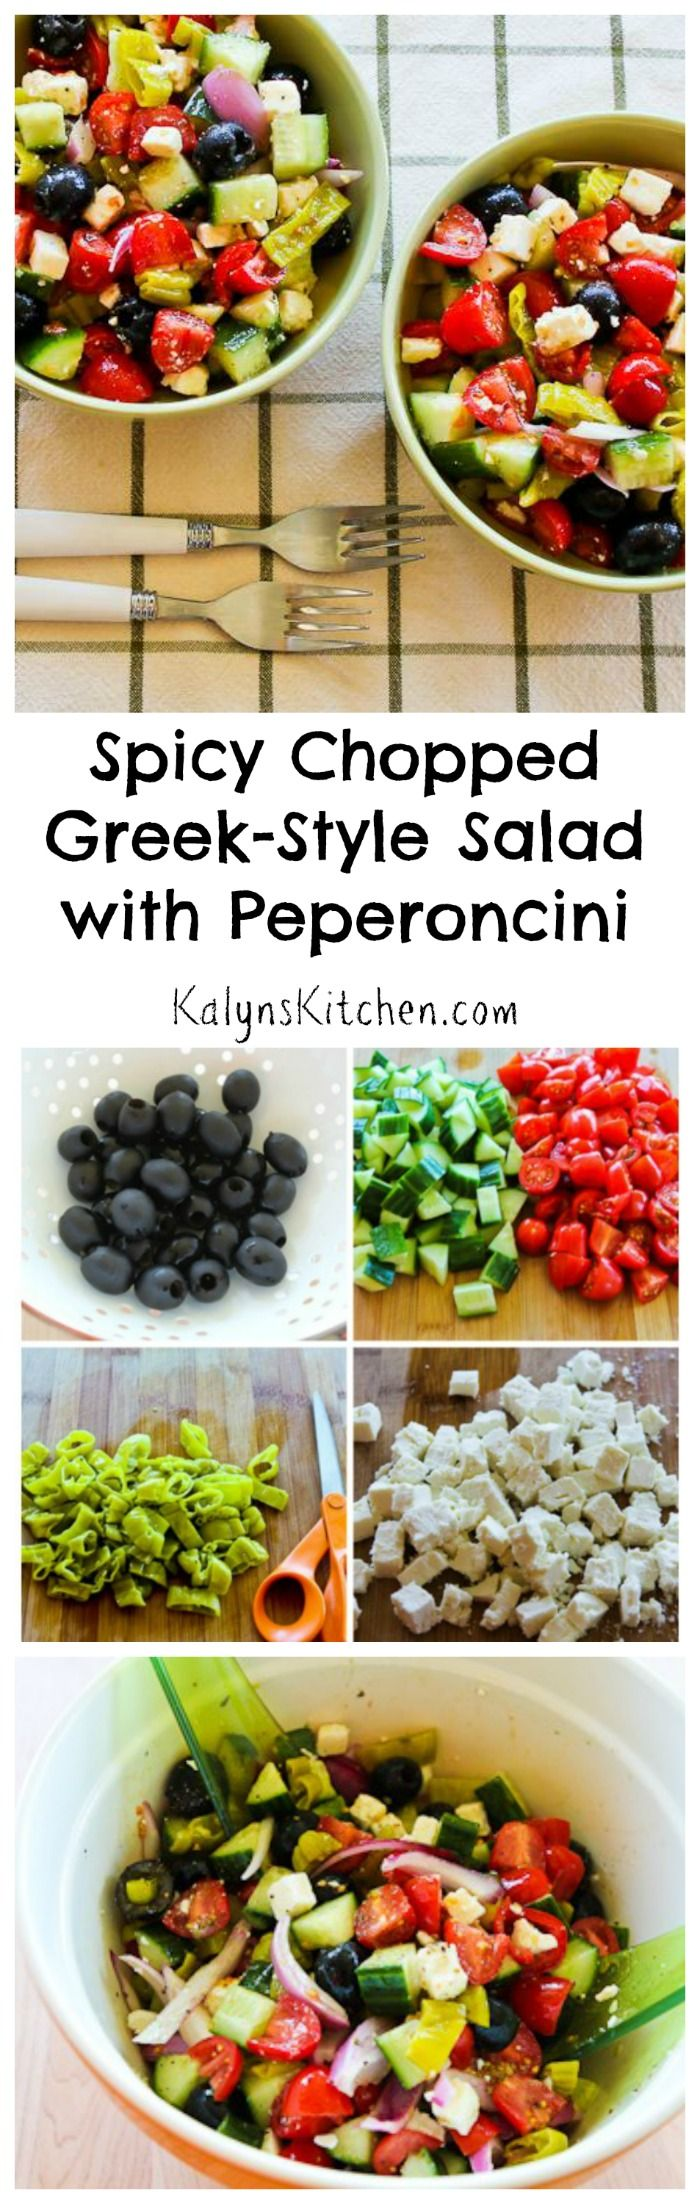 If you're looking for a perfect salad for summer holiday parties, this Spicy Chopped Greek-Style Salad with Peperoncini is always a hit. People ask me for the recipe whenever I take this to a pot-luck! And this healthy salad is low-carb, gluten-free, and South Beach Diet Friendly! [from KalynsKitchen.com]